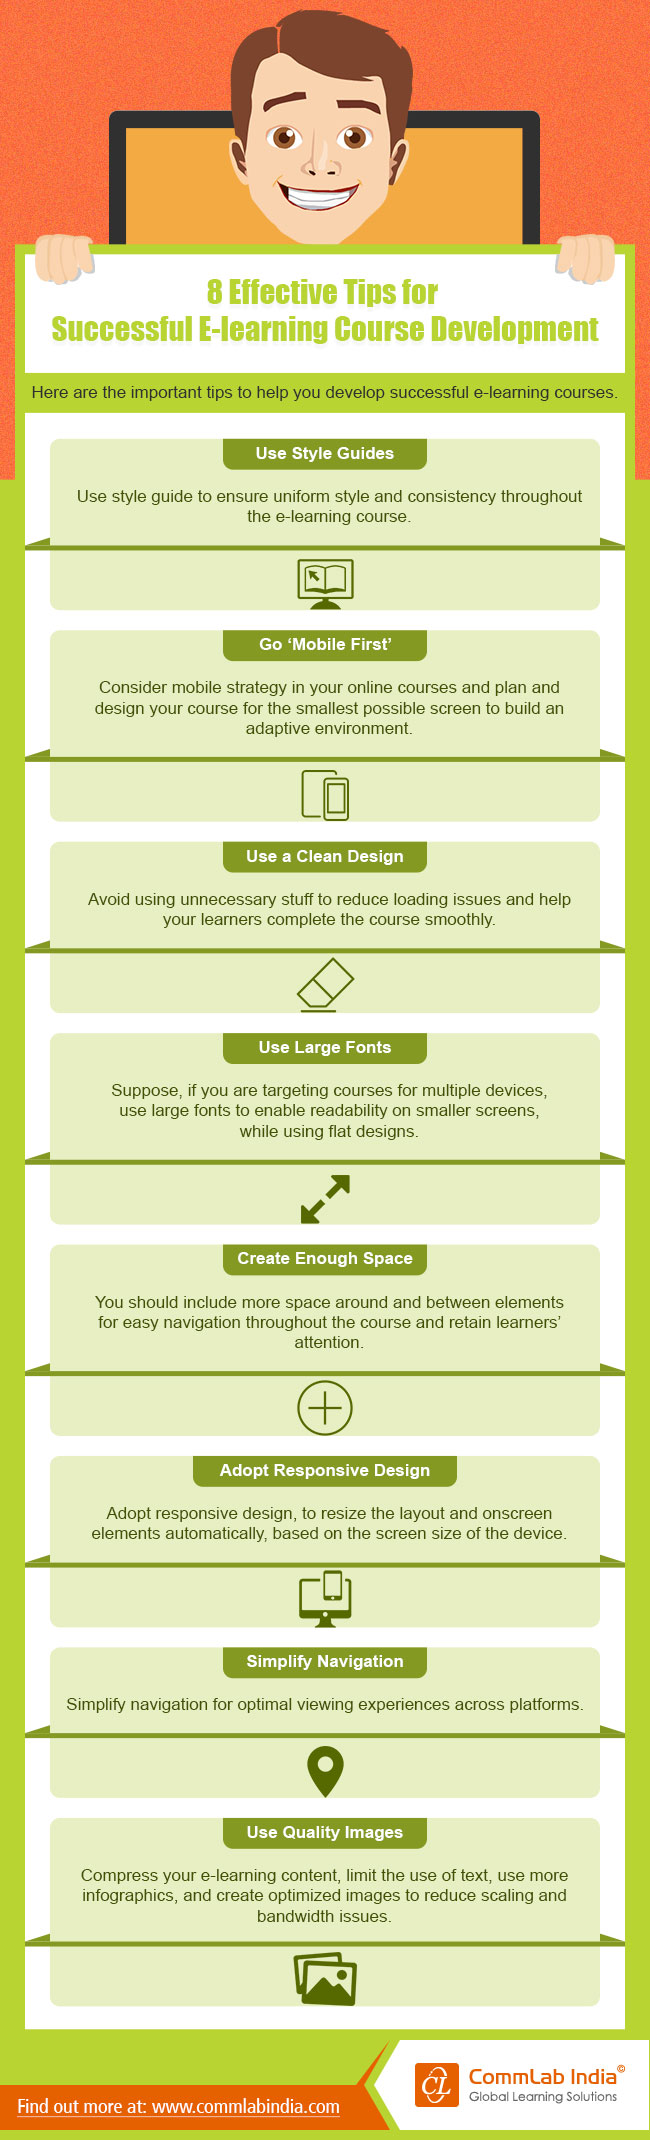 8 Effective Tips for Successful E-learning Course Development [Infographic]